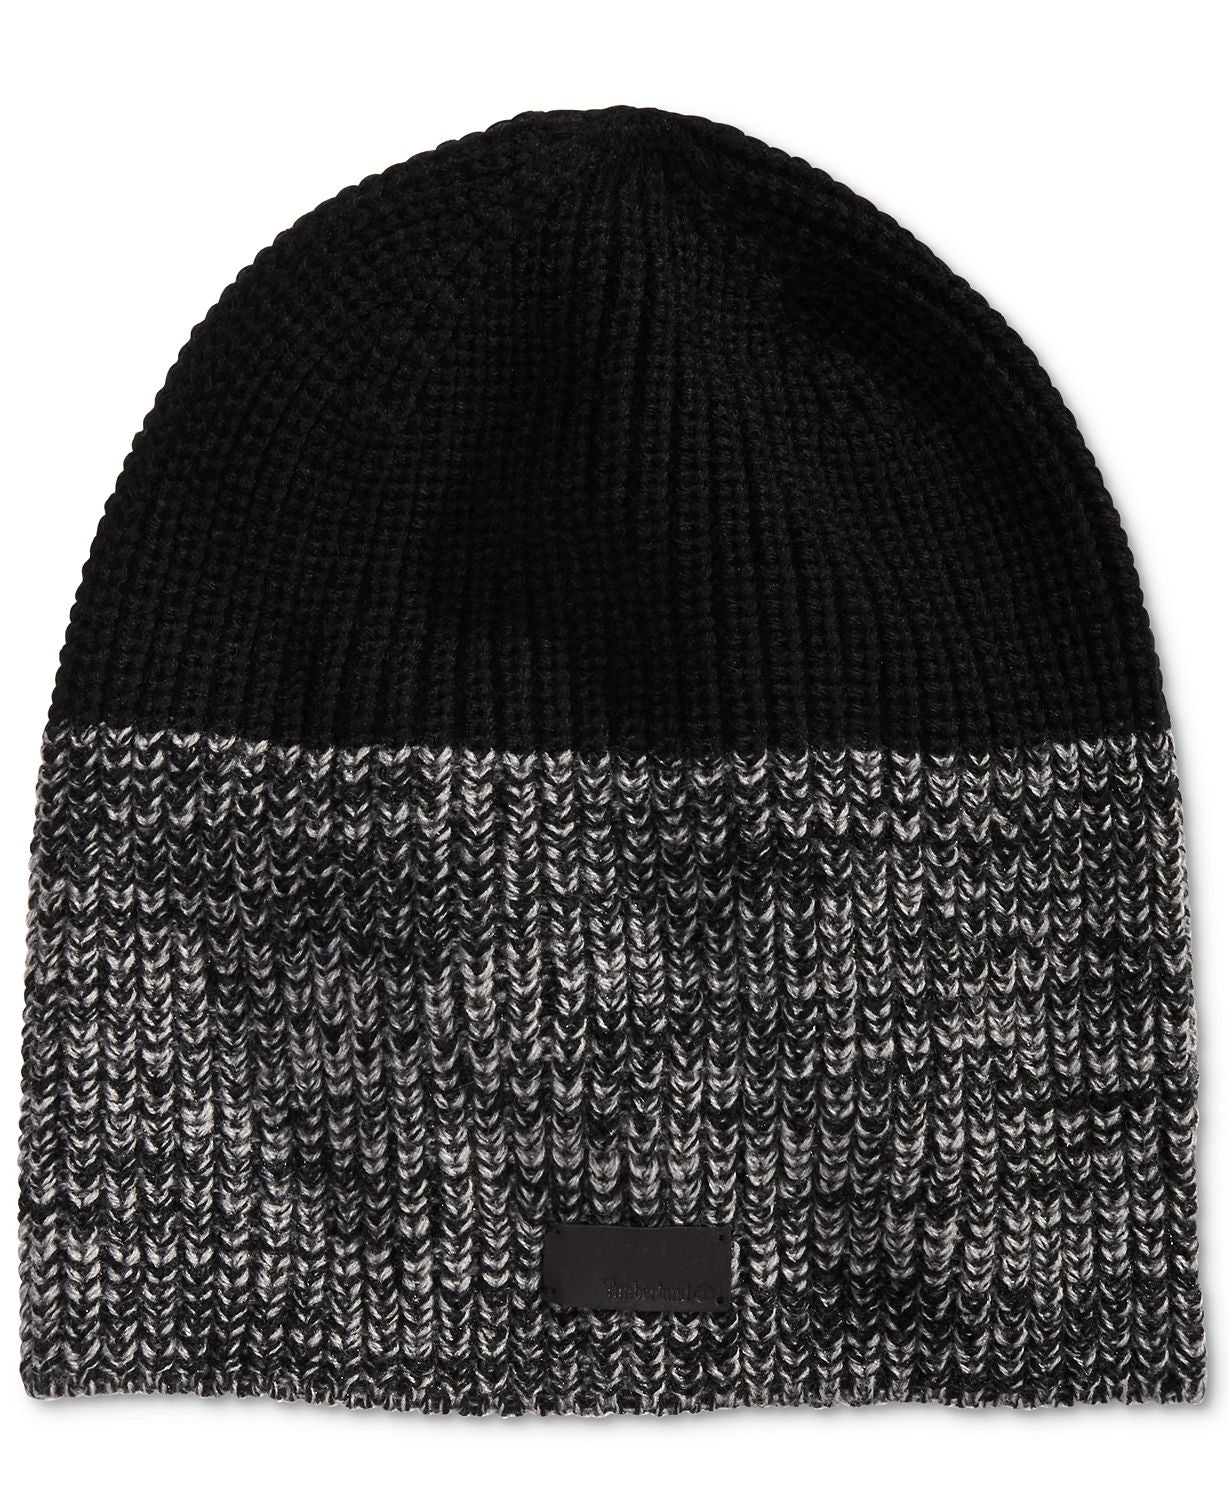 Timberland Marled Colorblock Beanie